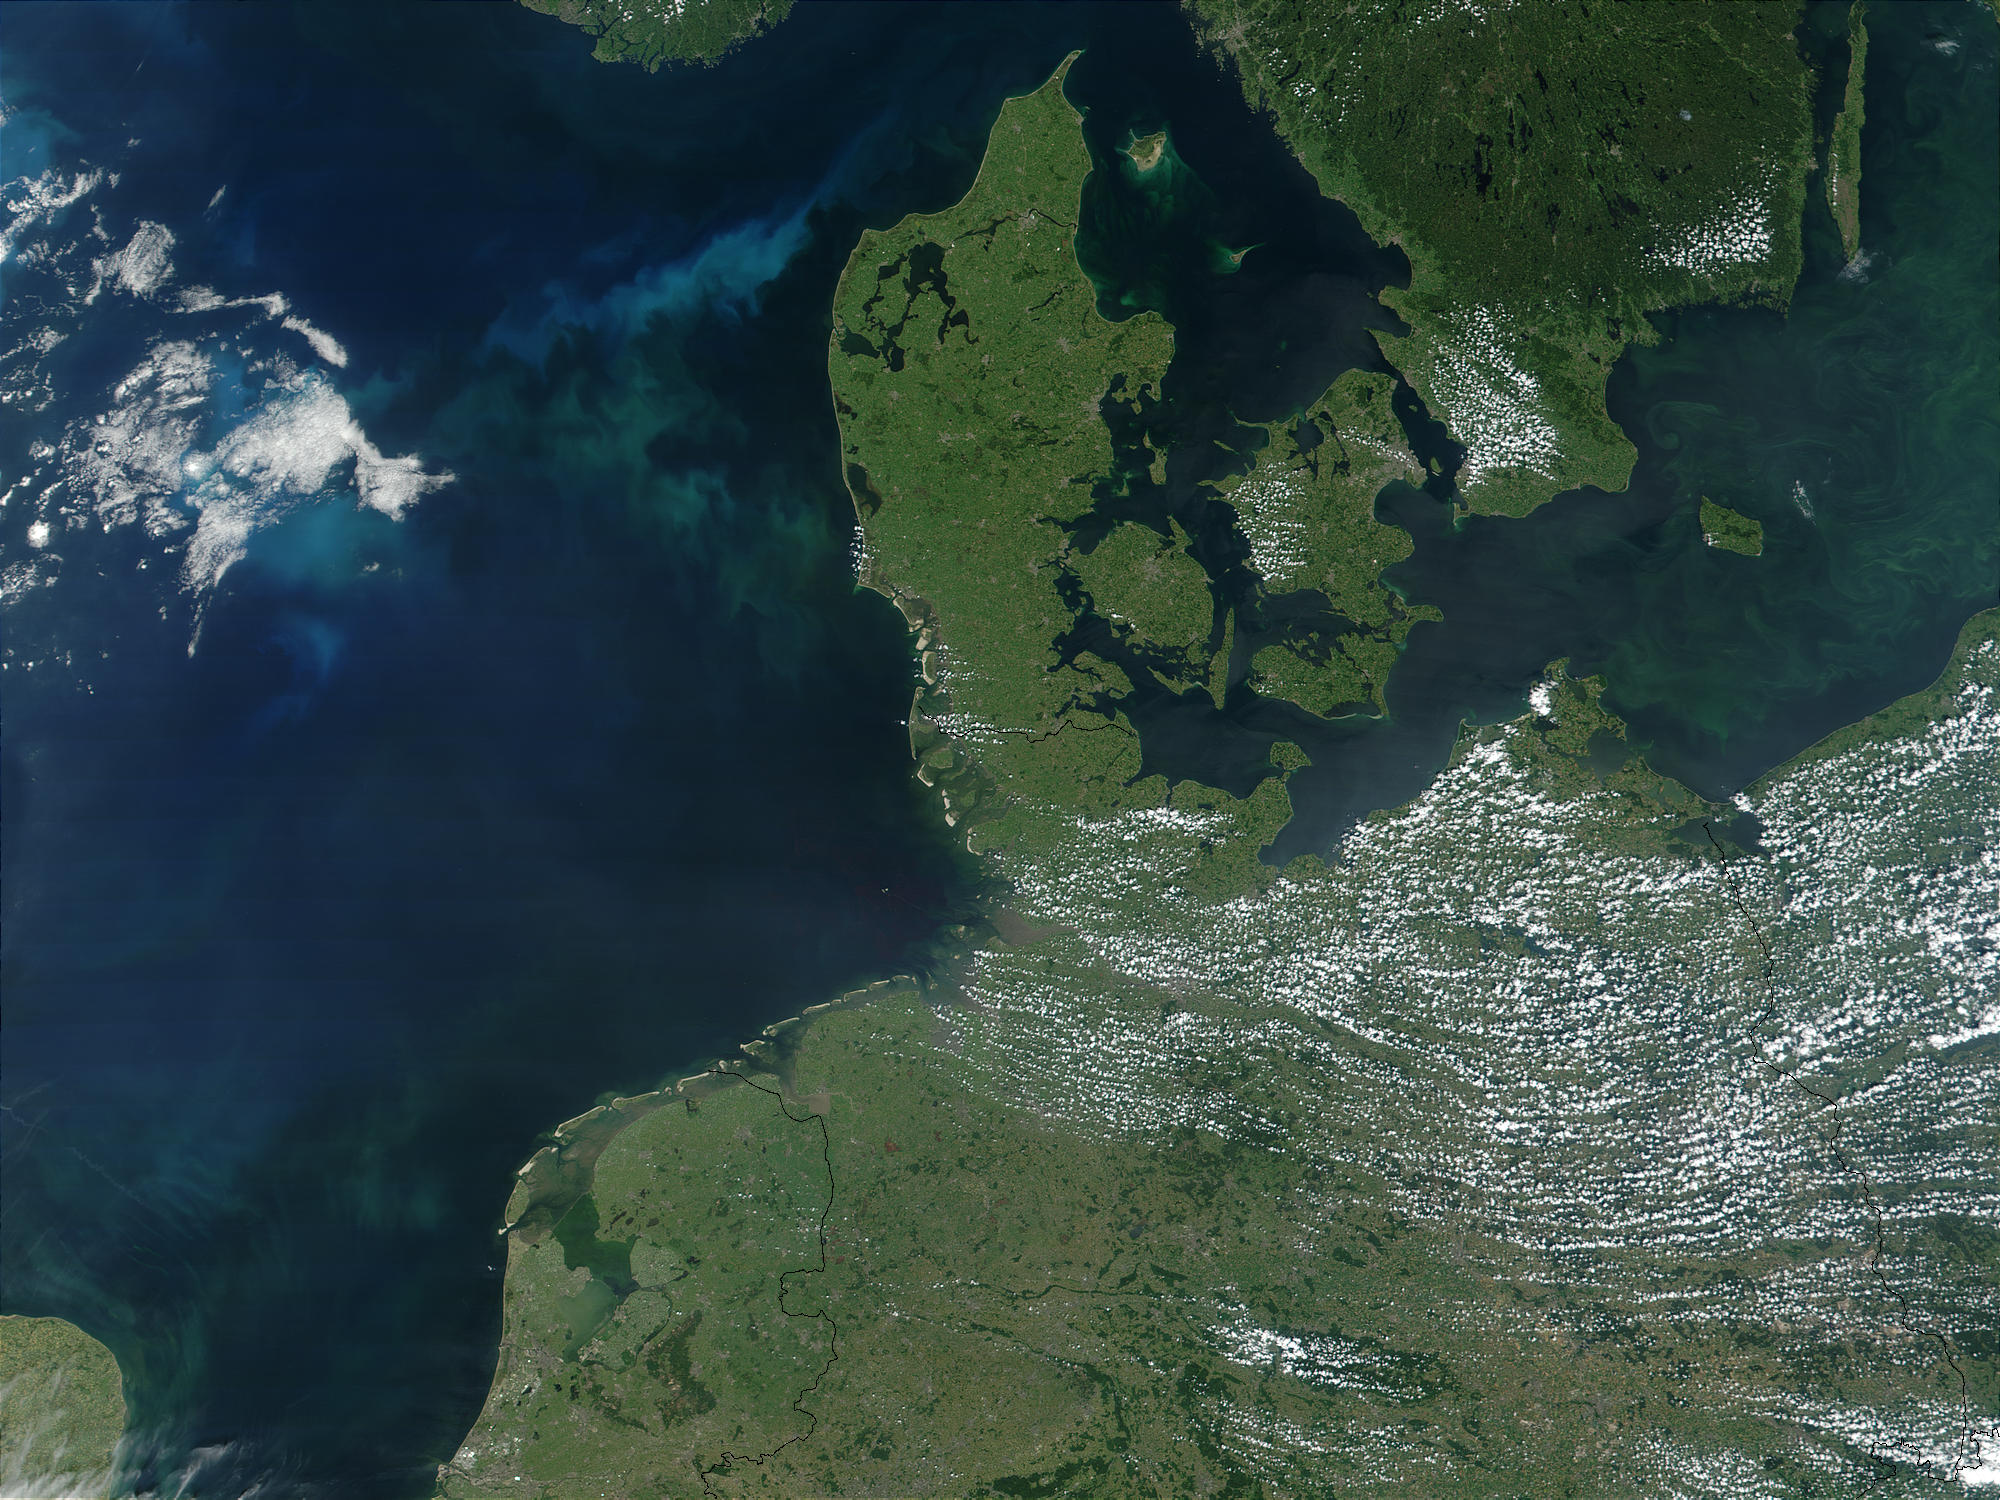 http://upload.wikimedia.org/wikipedia/commons/0/06/Denemarken_satelliet.jpg